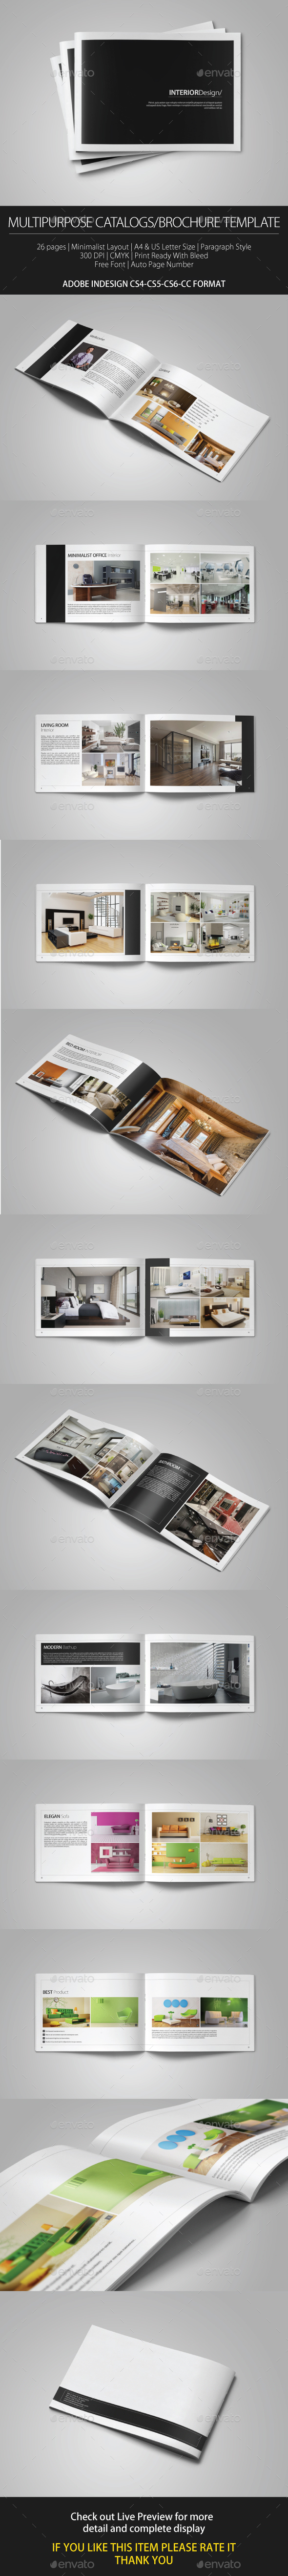 Multipurpose Portfolio Brochure Cataloge Template - Brochures Print Templates